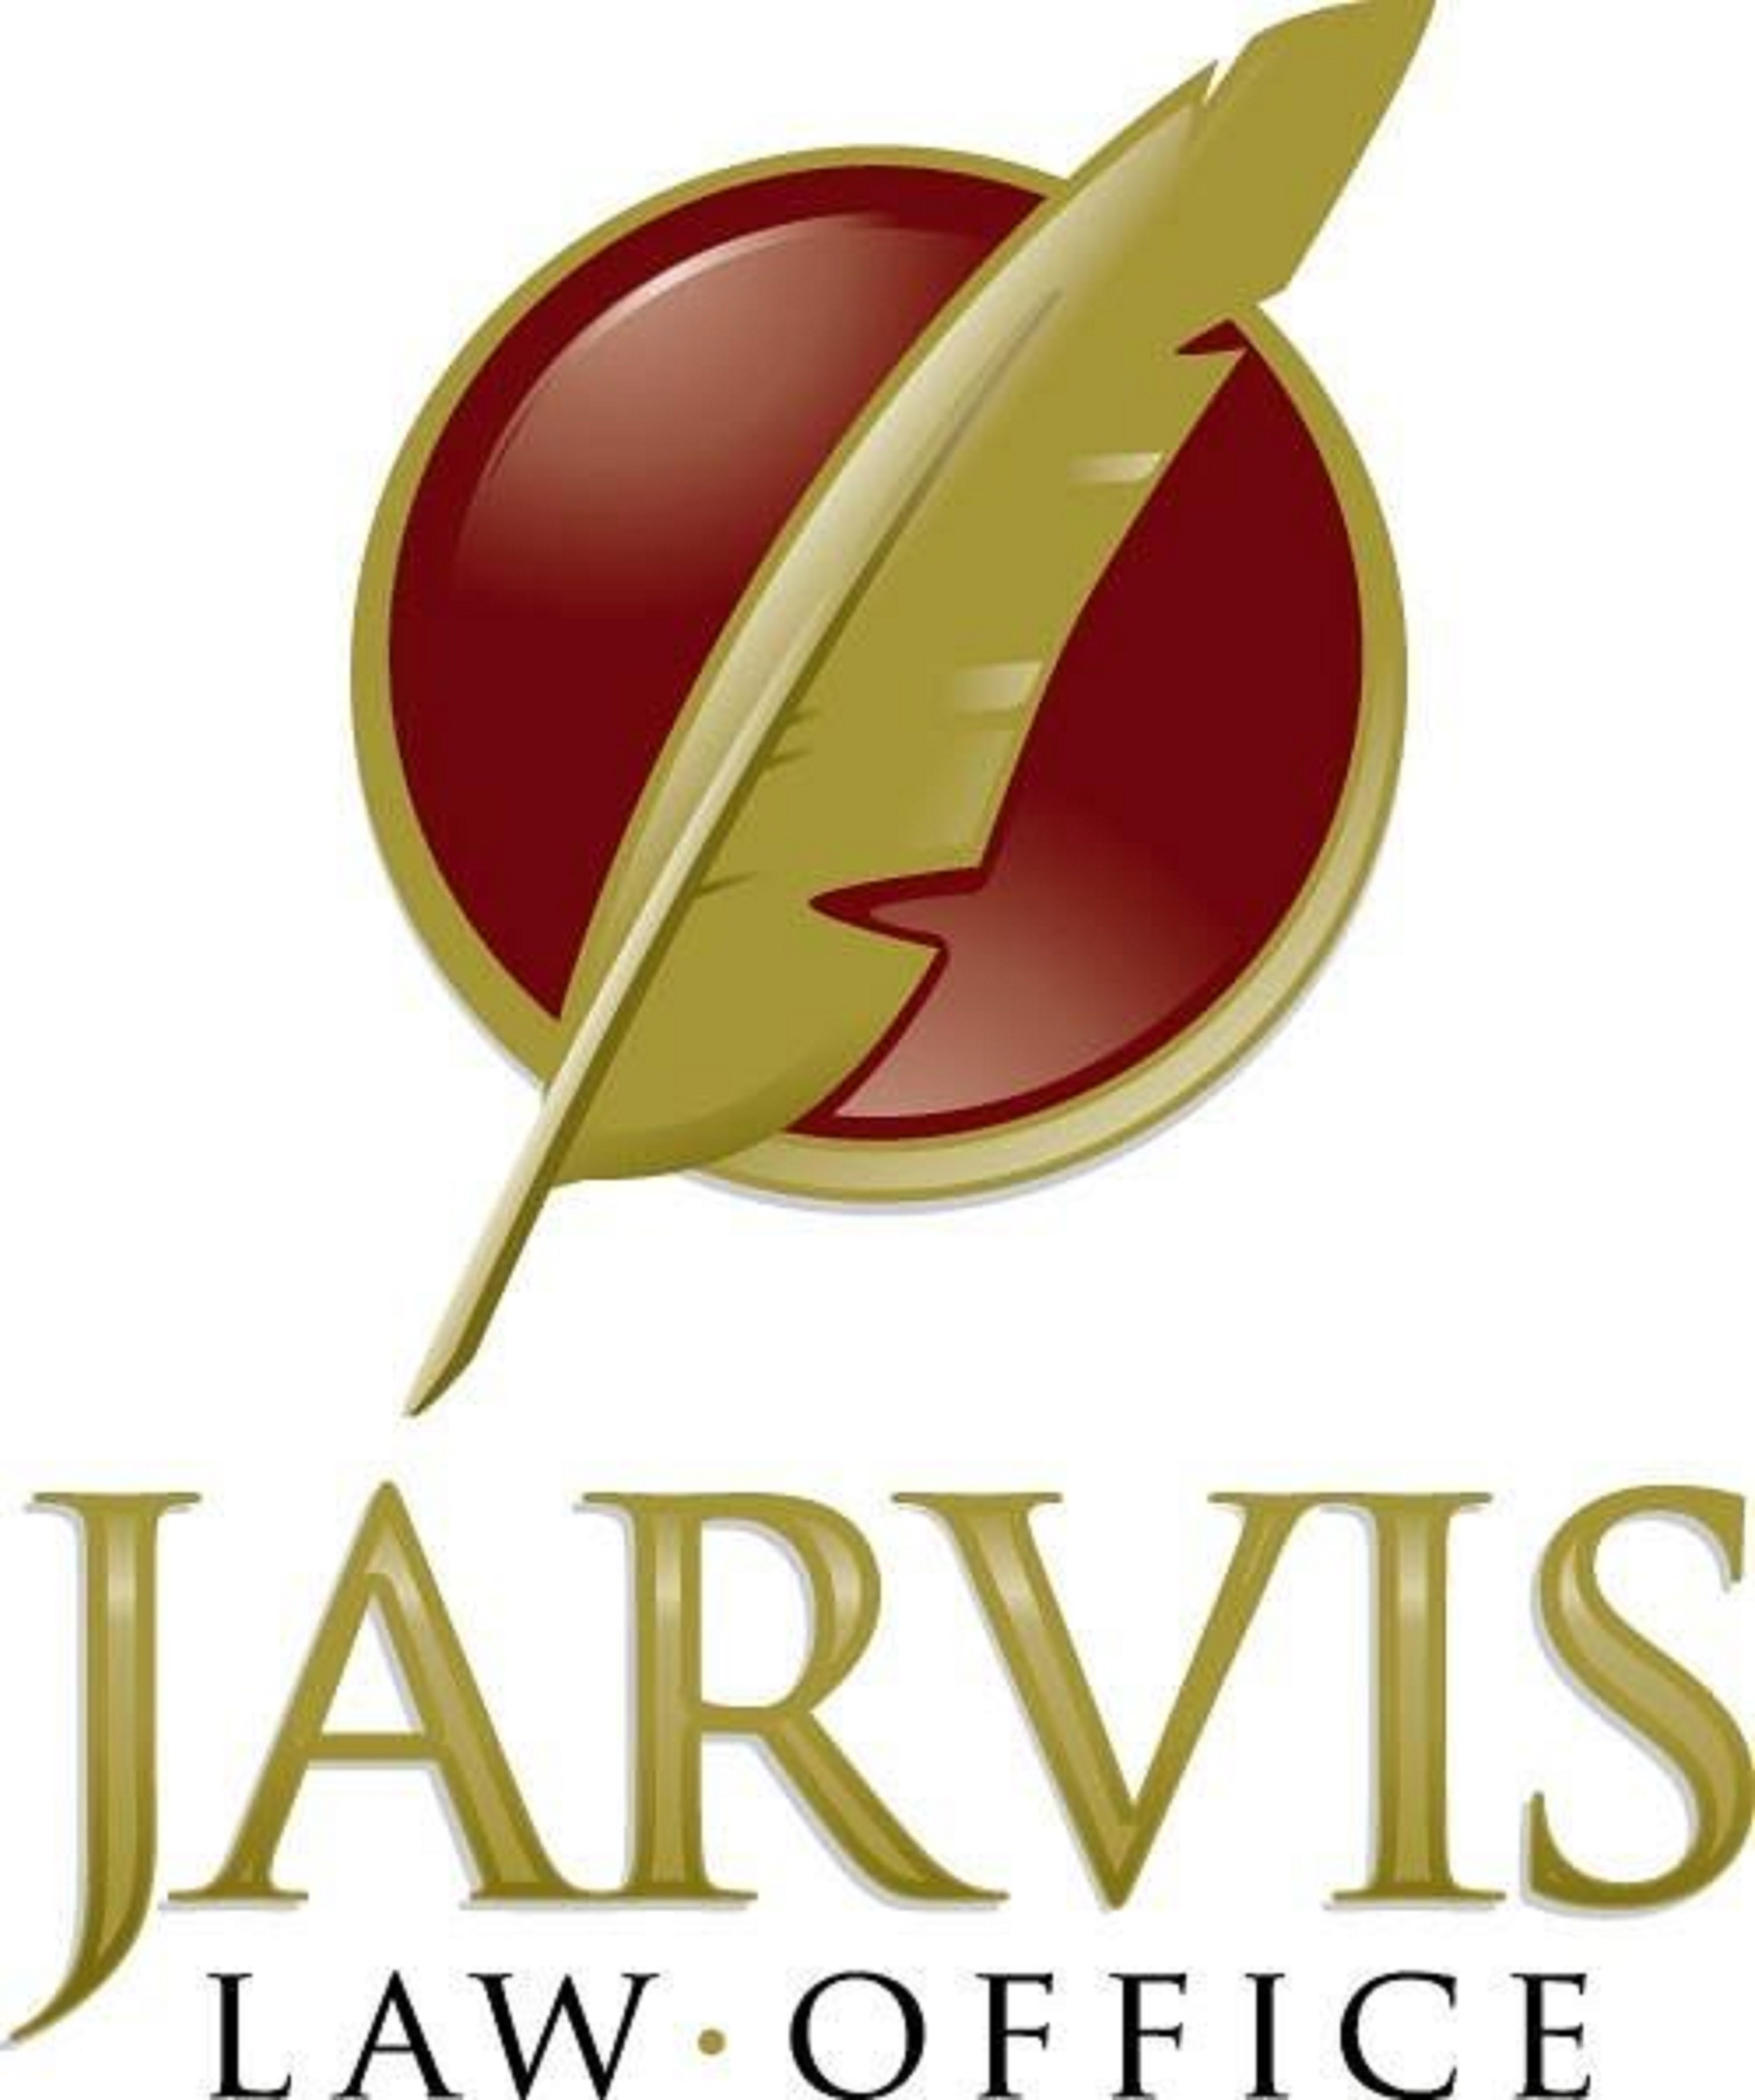 2. Jarvis (Financial and Legal Tips)